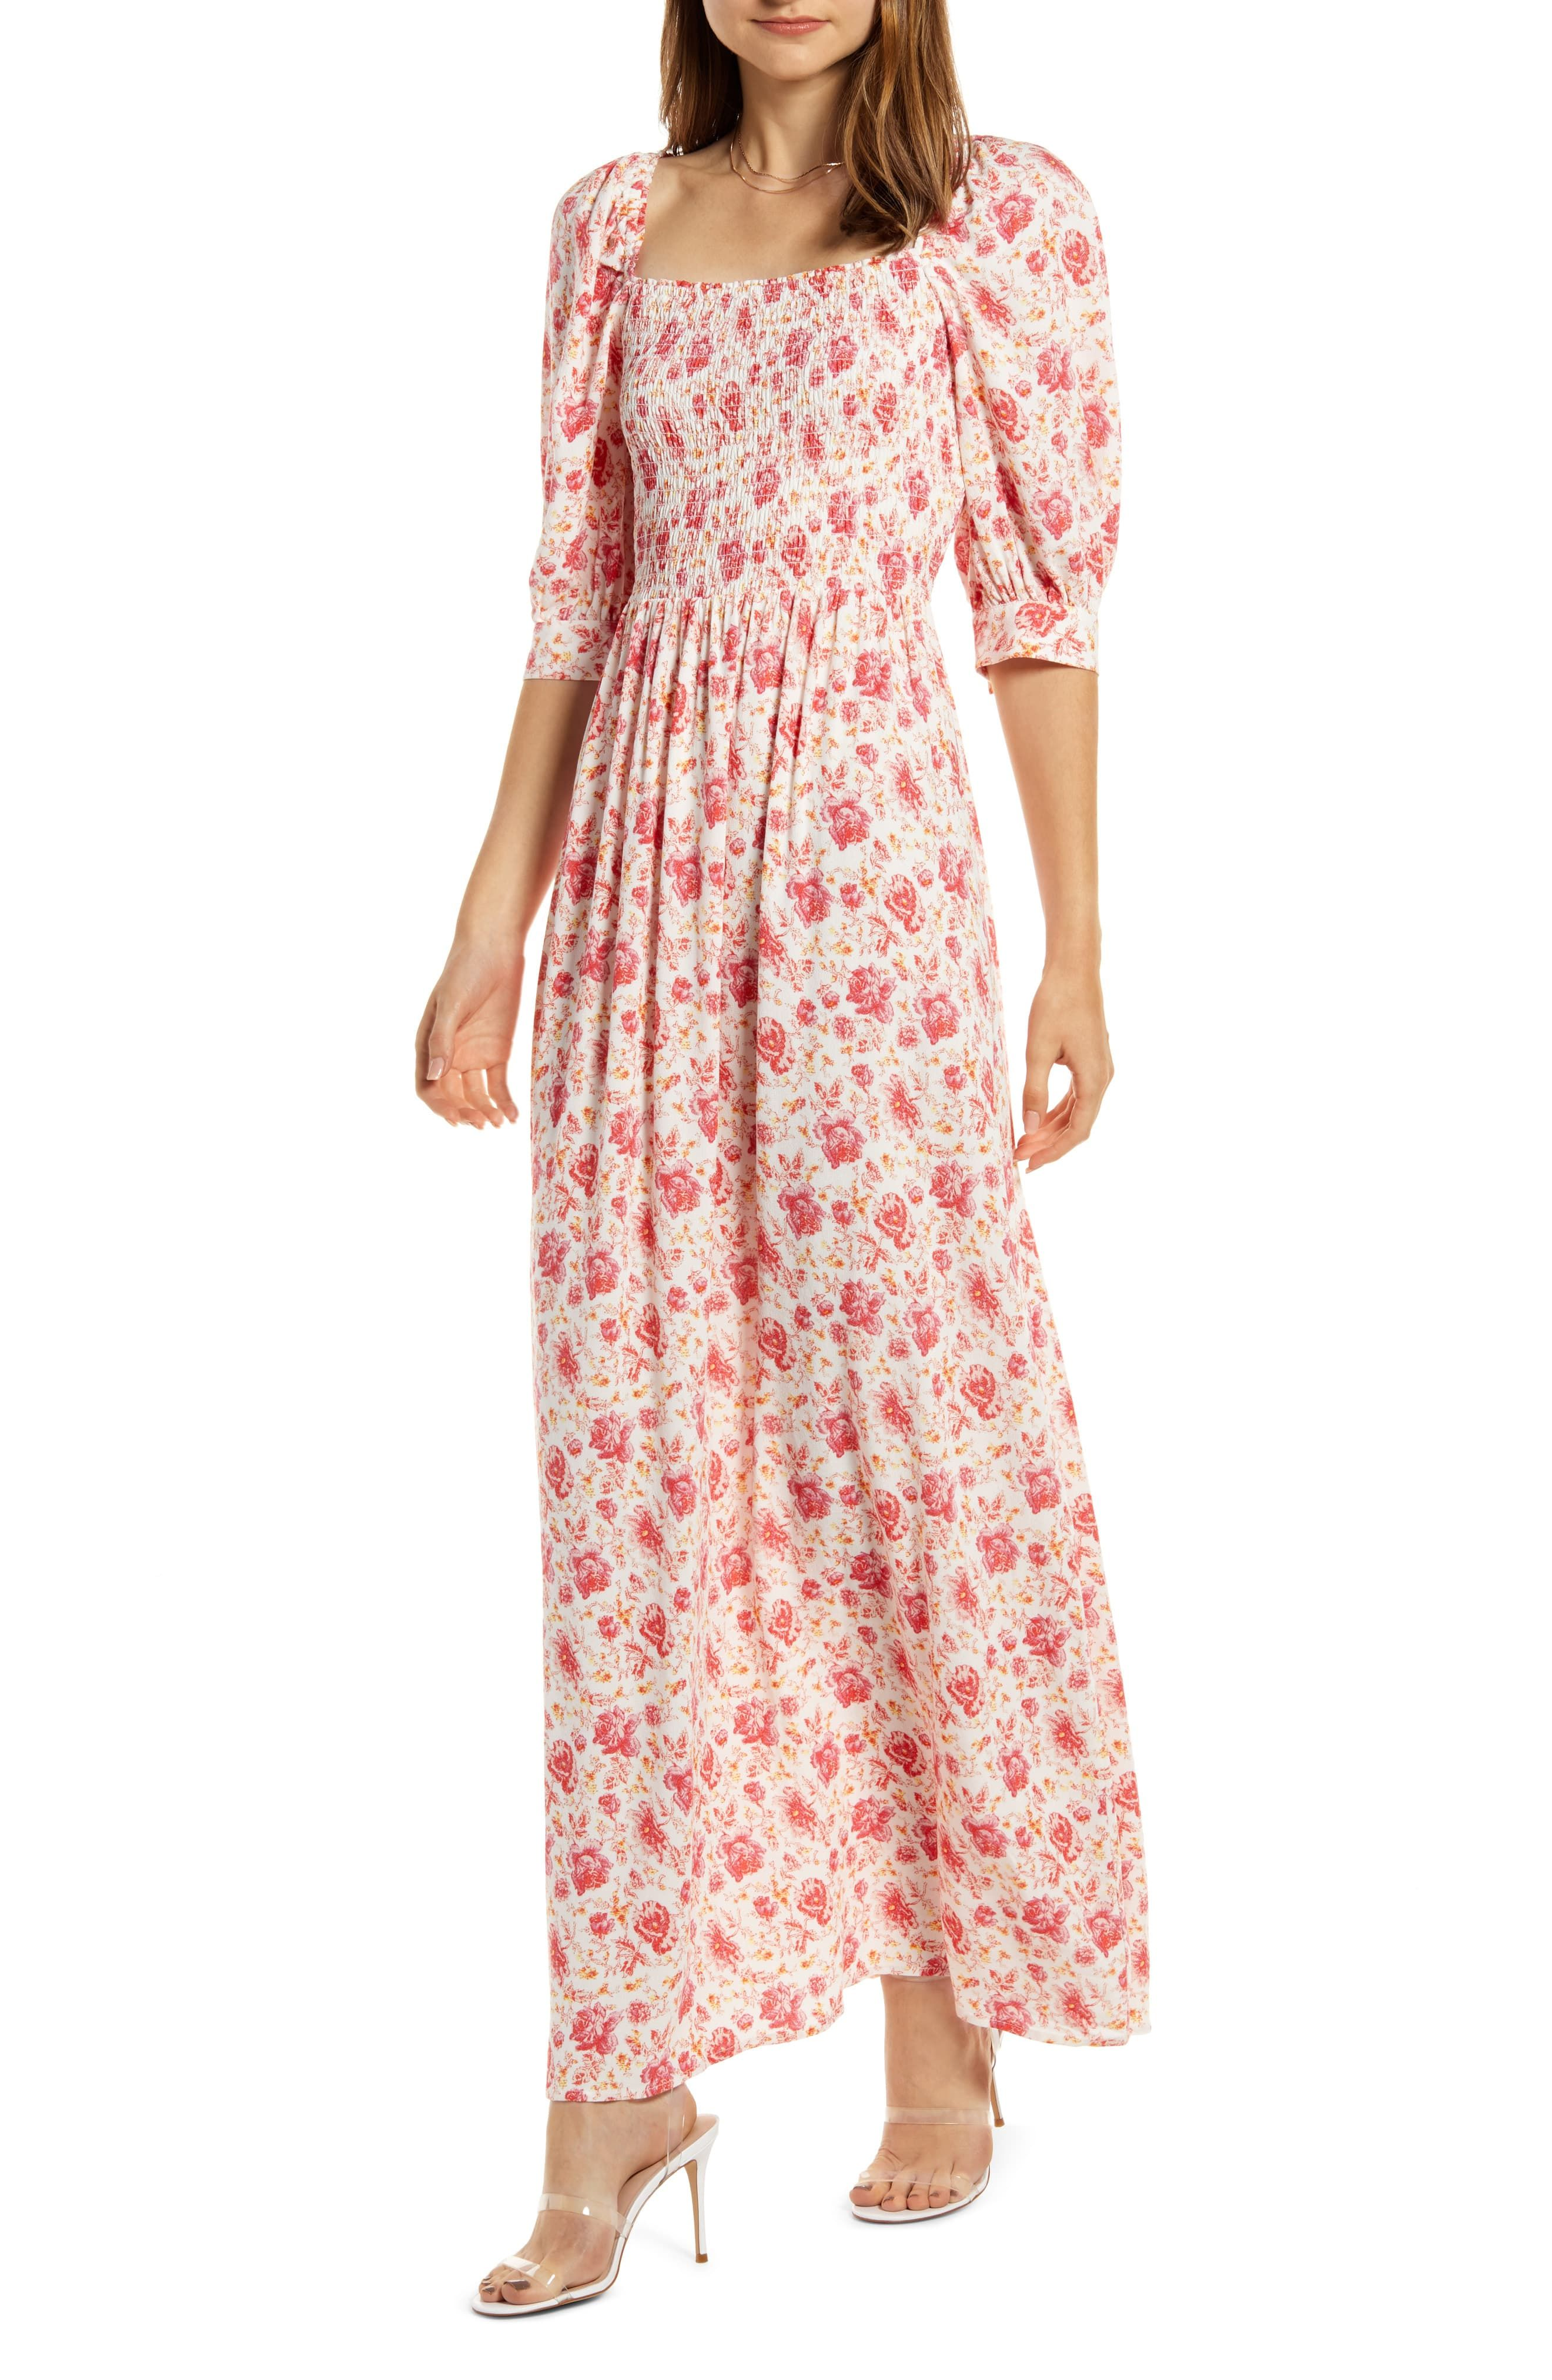 Nordstrom's Popular All in Favor Maxi Dress Is On Sale